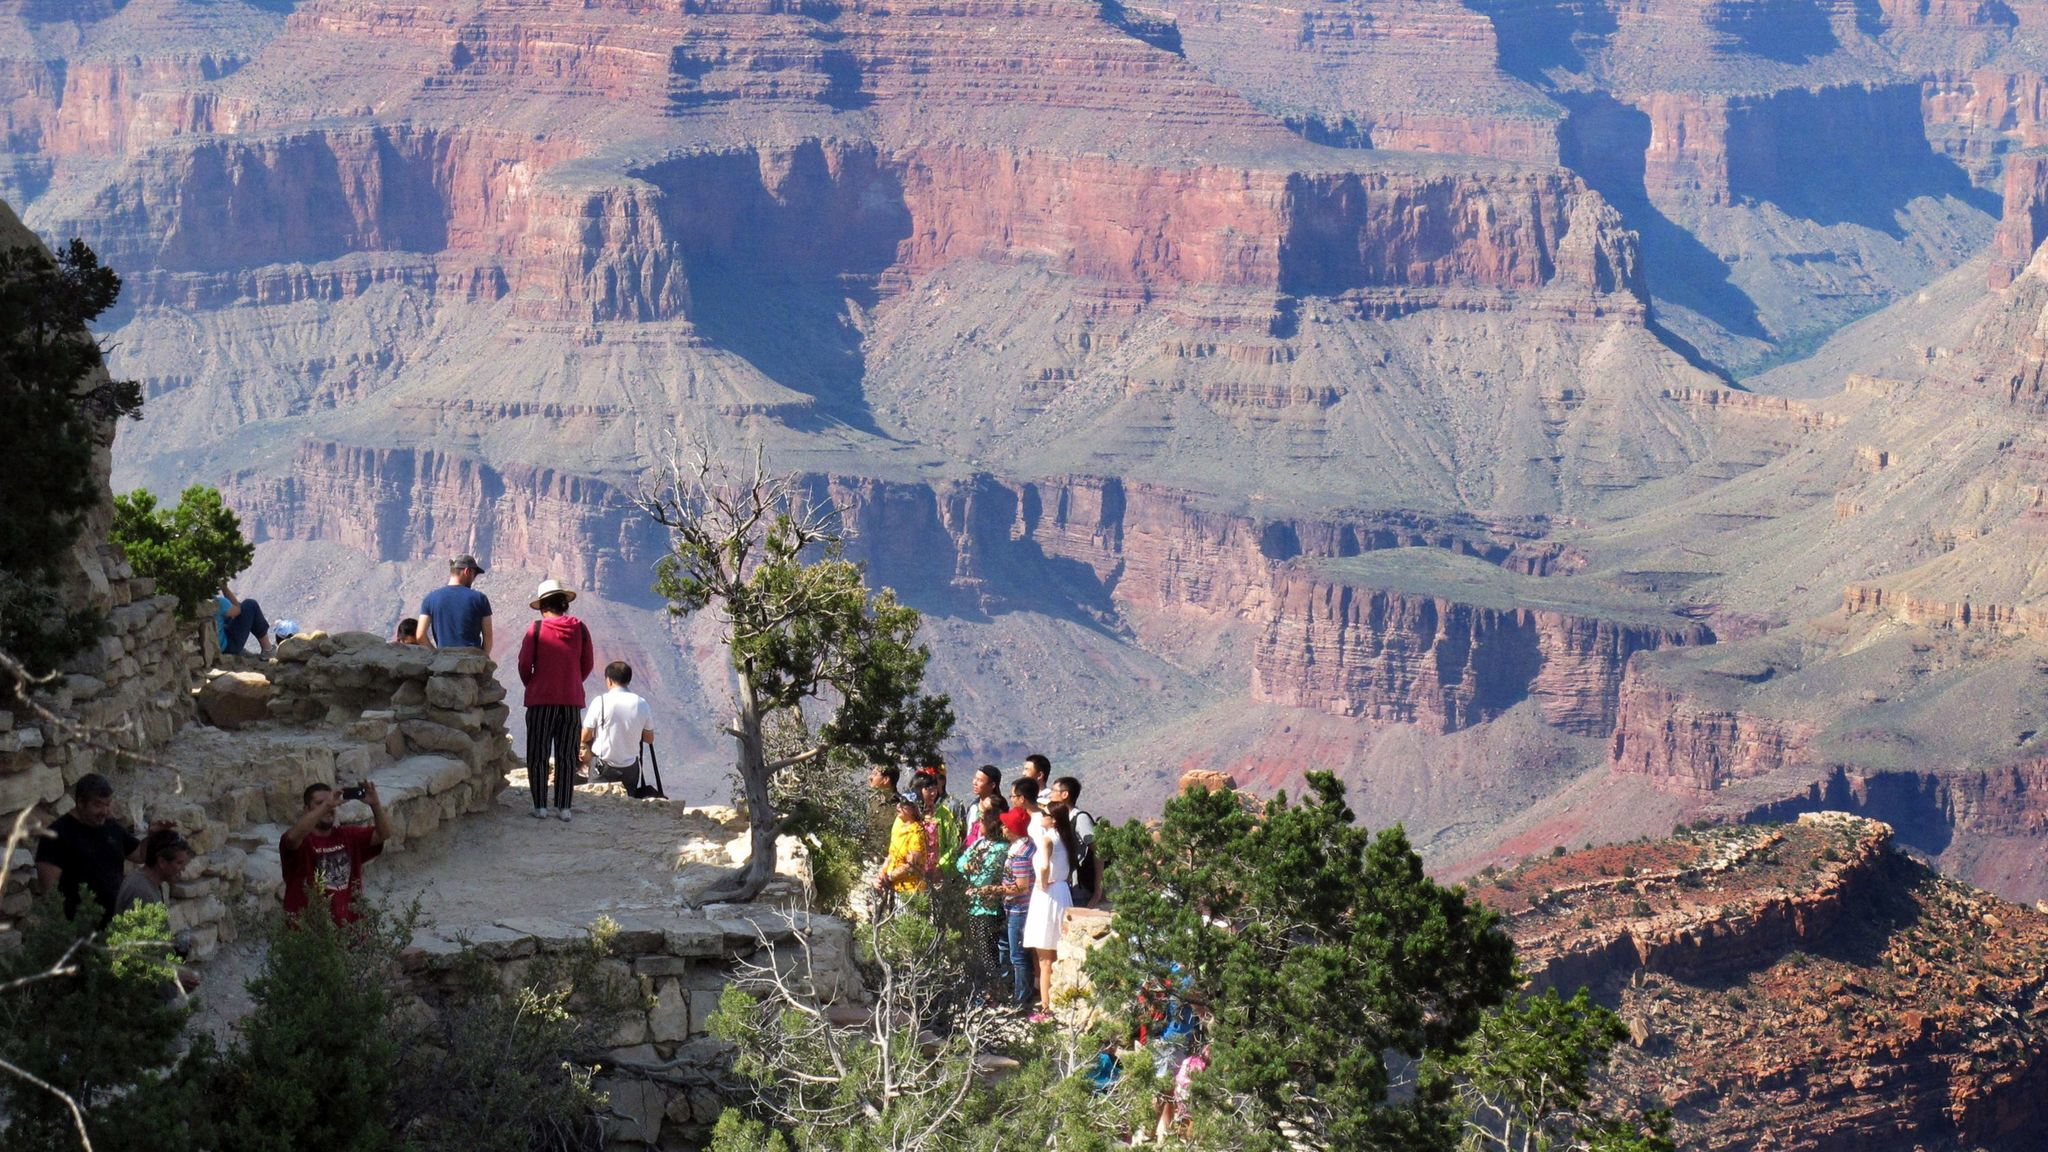 Entry to national parks such as Arizona's Grand Canyon is free this weekend in honor of Veterans Day.